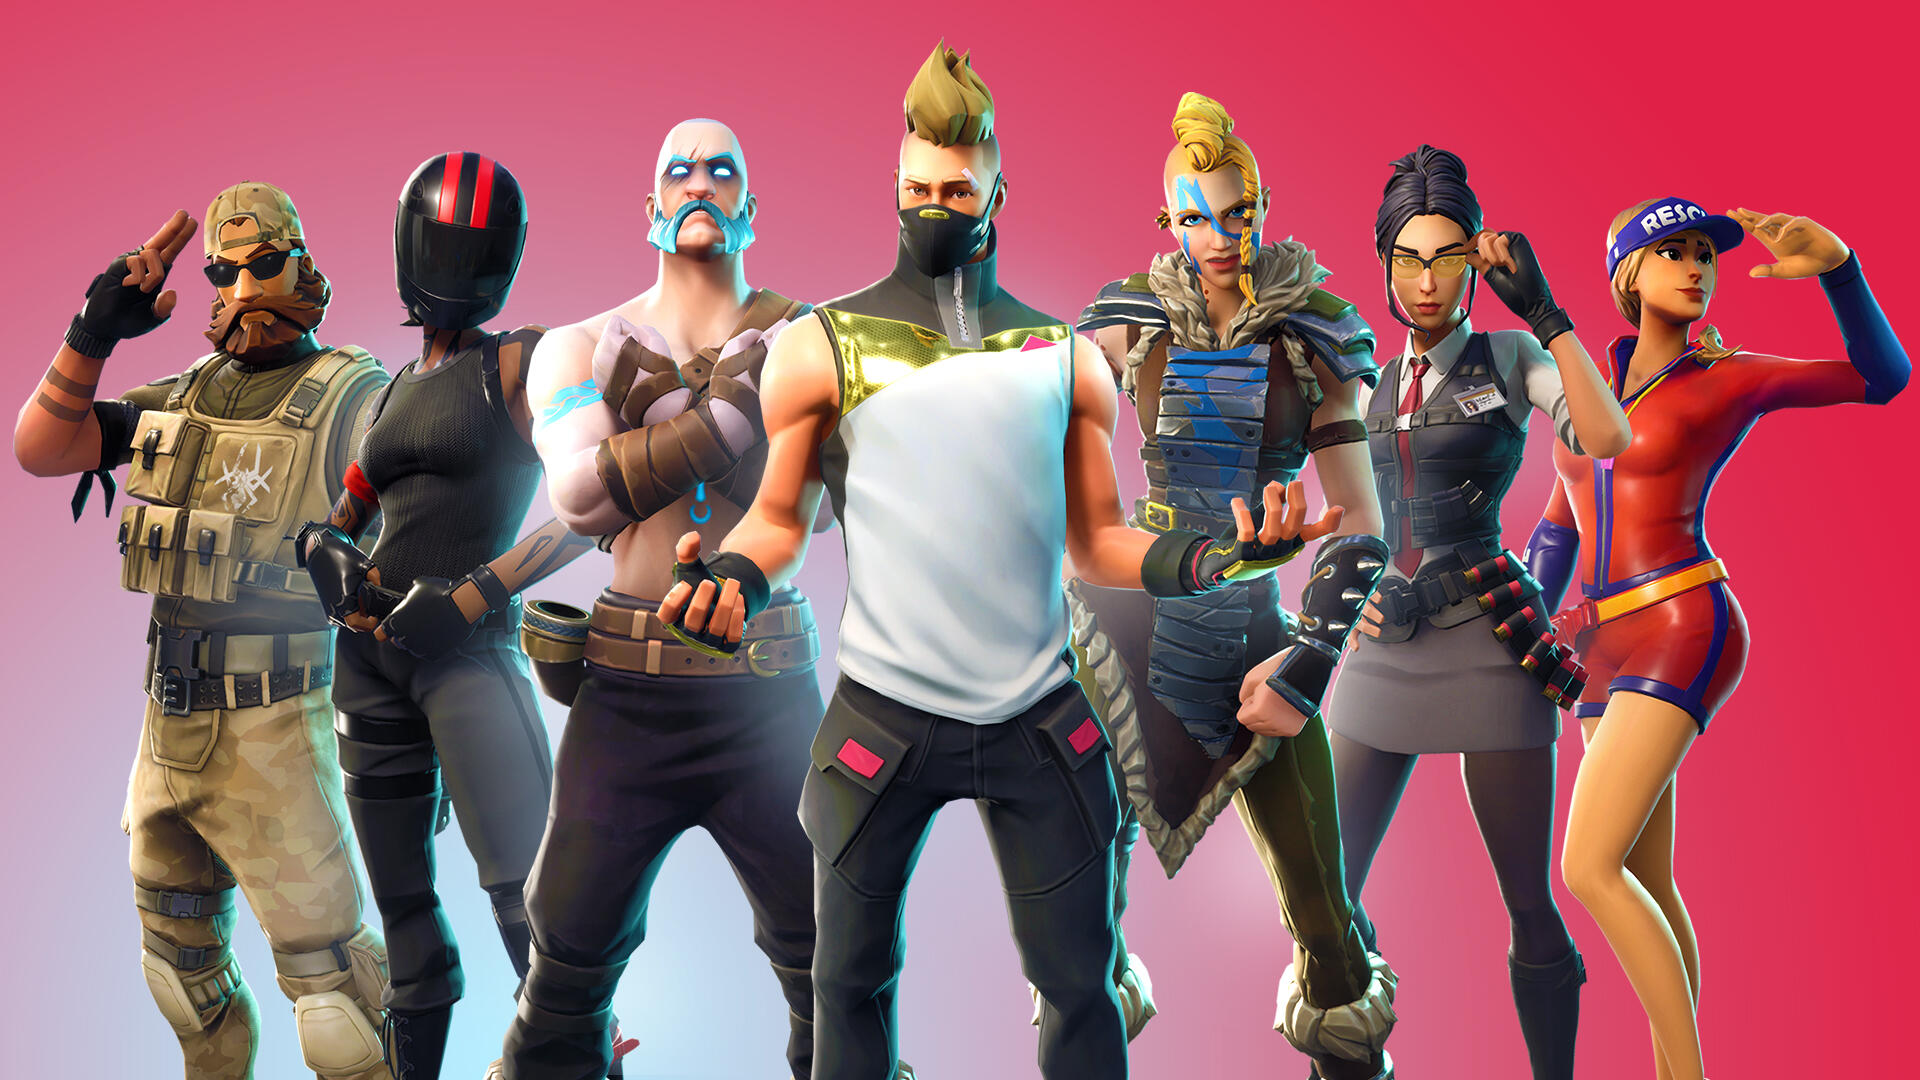 Fortnite Released a Variant of a Skin Previously Exclusive to a Battle Pass, and It Could Mean Big Things for the Skin Economy